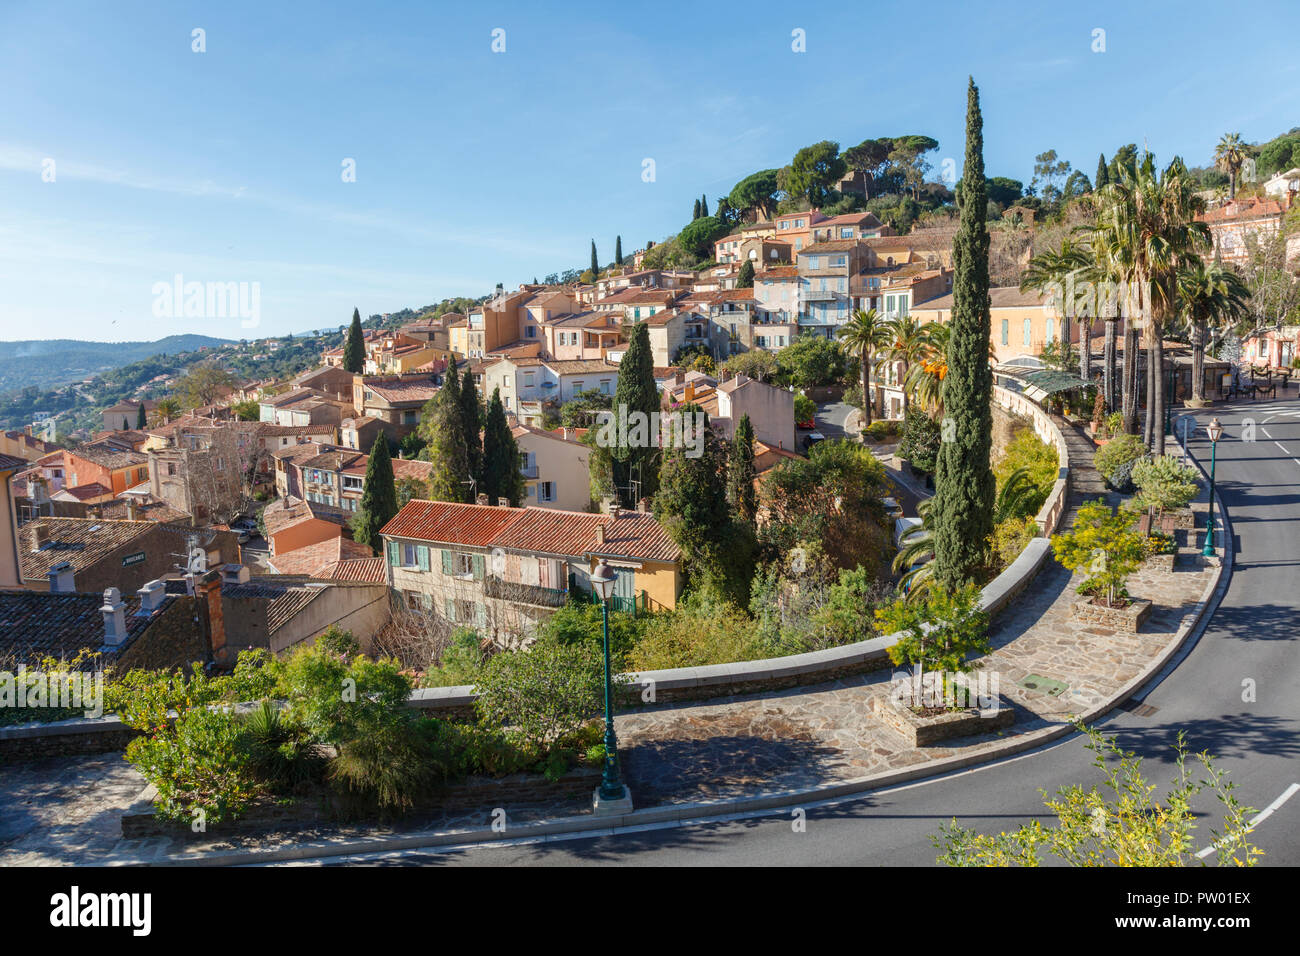 Les Location Streetview In Bormes Les Mimosas A Village In France Location